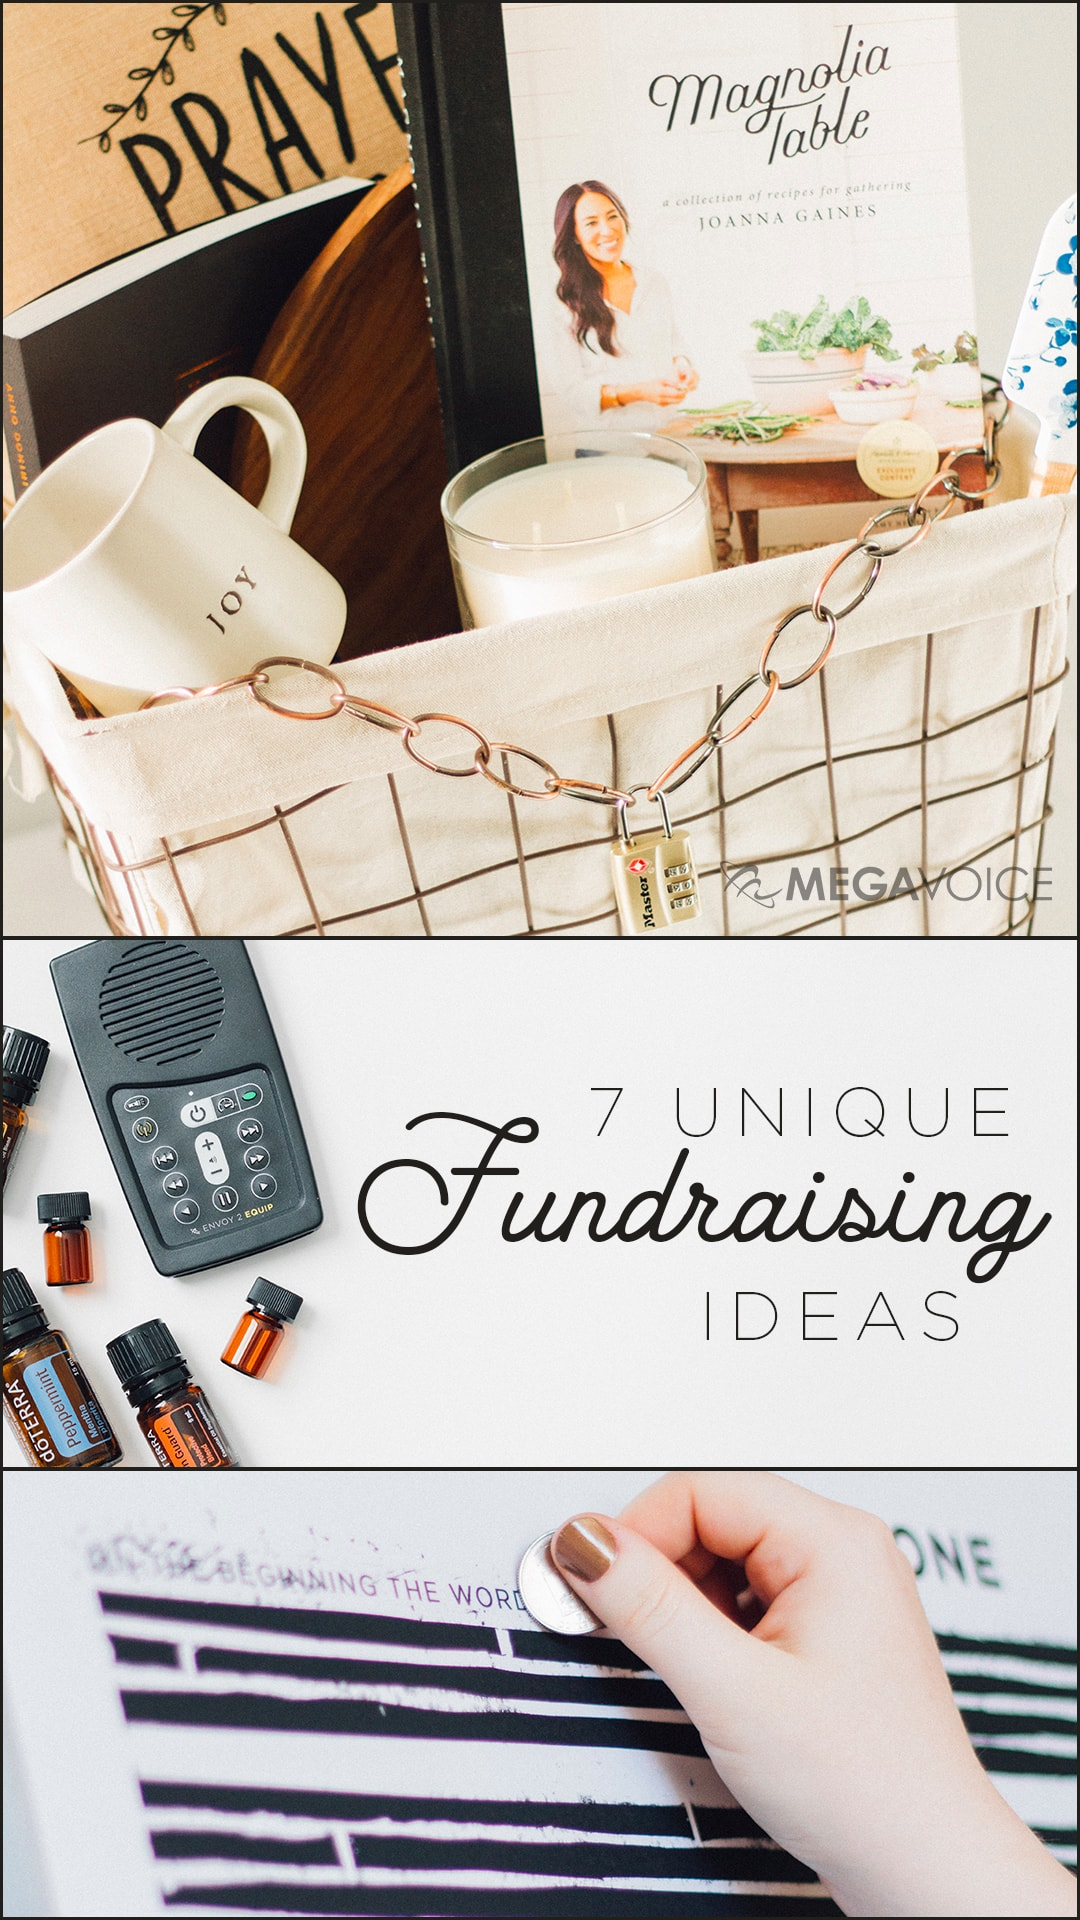 7 unique fundraising ideas image